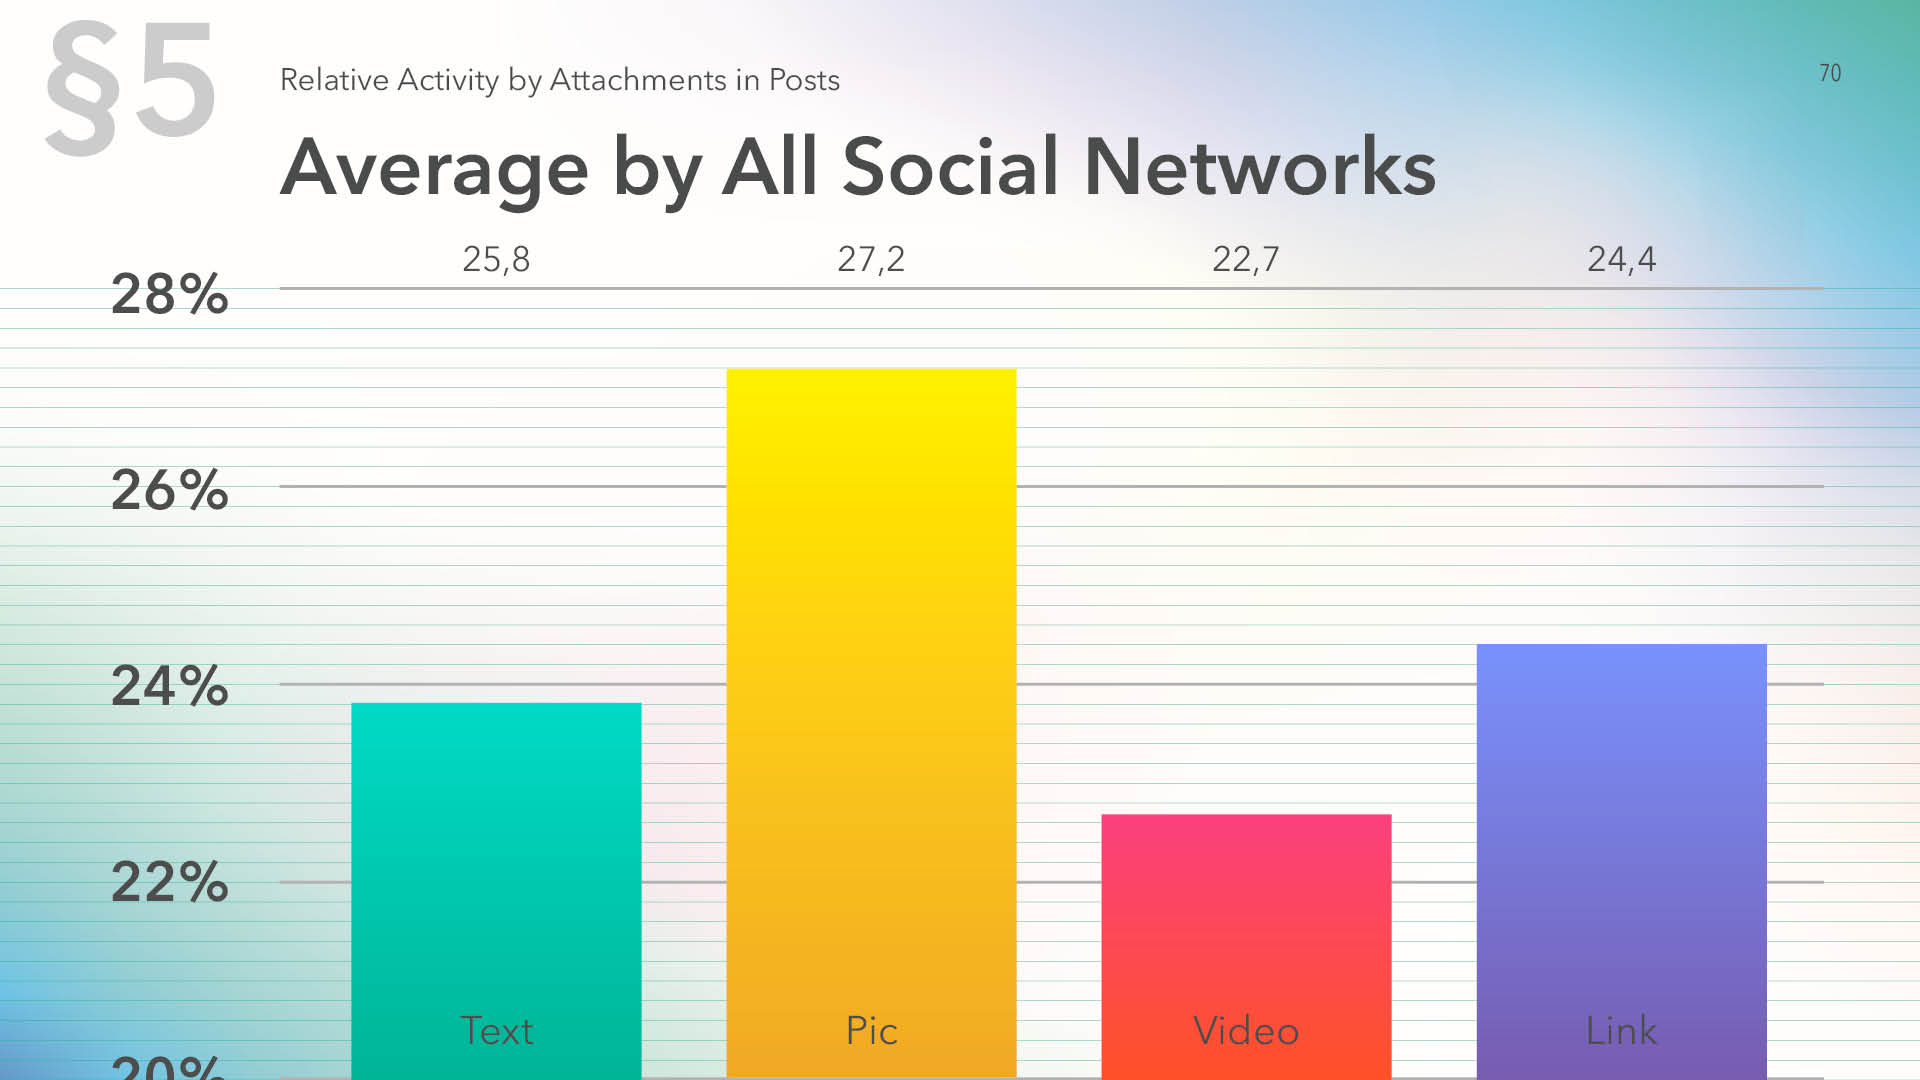 Average relative activity by all Social networks by content type in posts